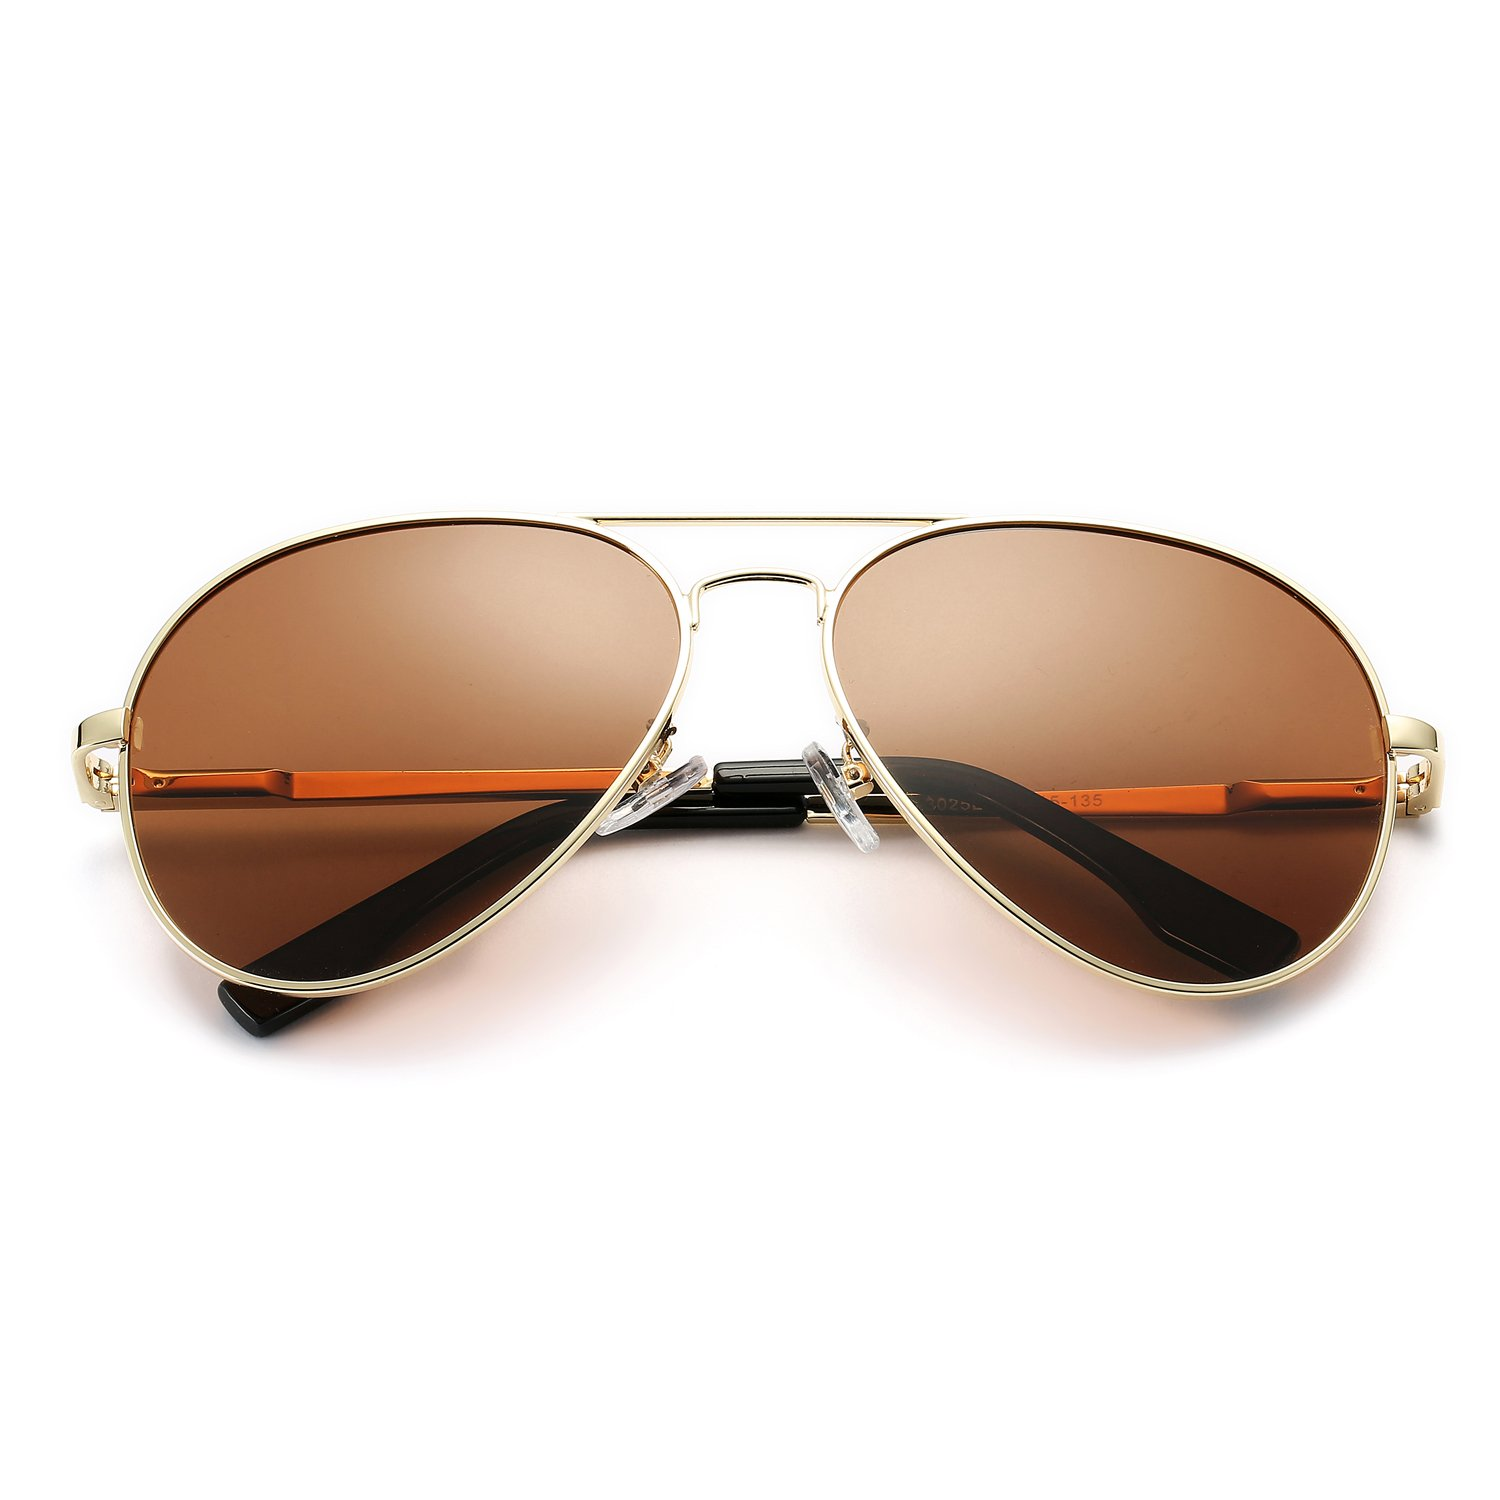 Pro Acme Oversized Aviator Sunglasses for Men Women Polarized Mirrored Lens - UV 400 with Case (Gold/Brown) by Pro Acme